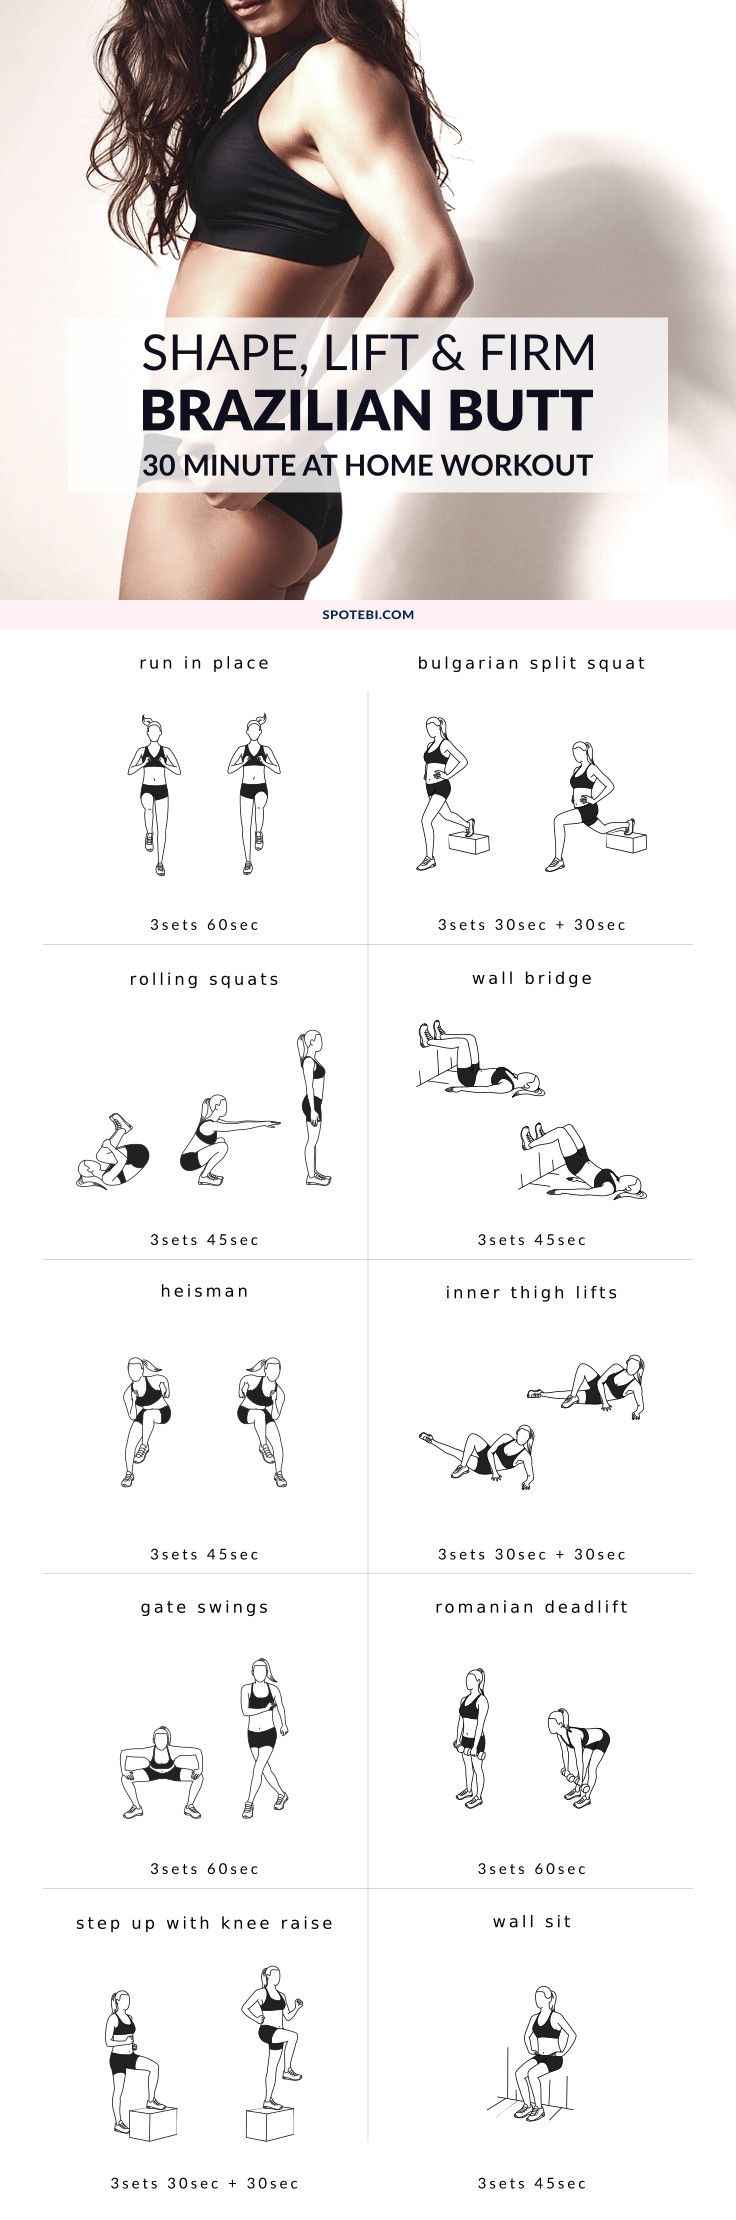 Want to know the secret to a perfect booty? Try this 30 minute sculpting and lifting Brazilian butt workout. Shape and firm your glutes and thighs fast! https://www.spotebi.com/workout-routines/shape-lift-firm-brazilian-butt-workout/